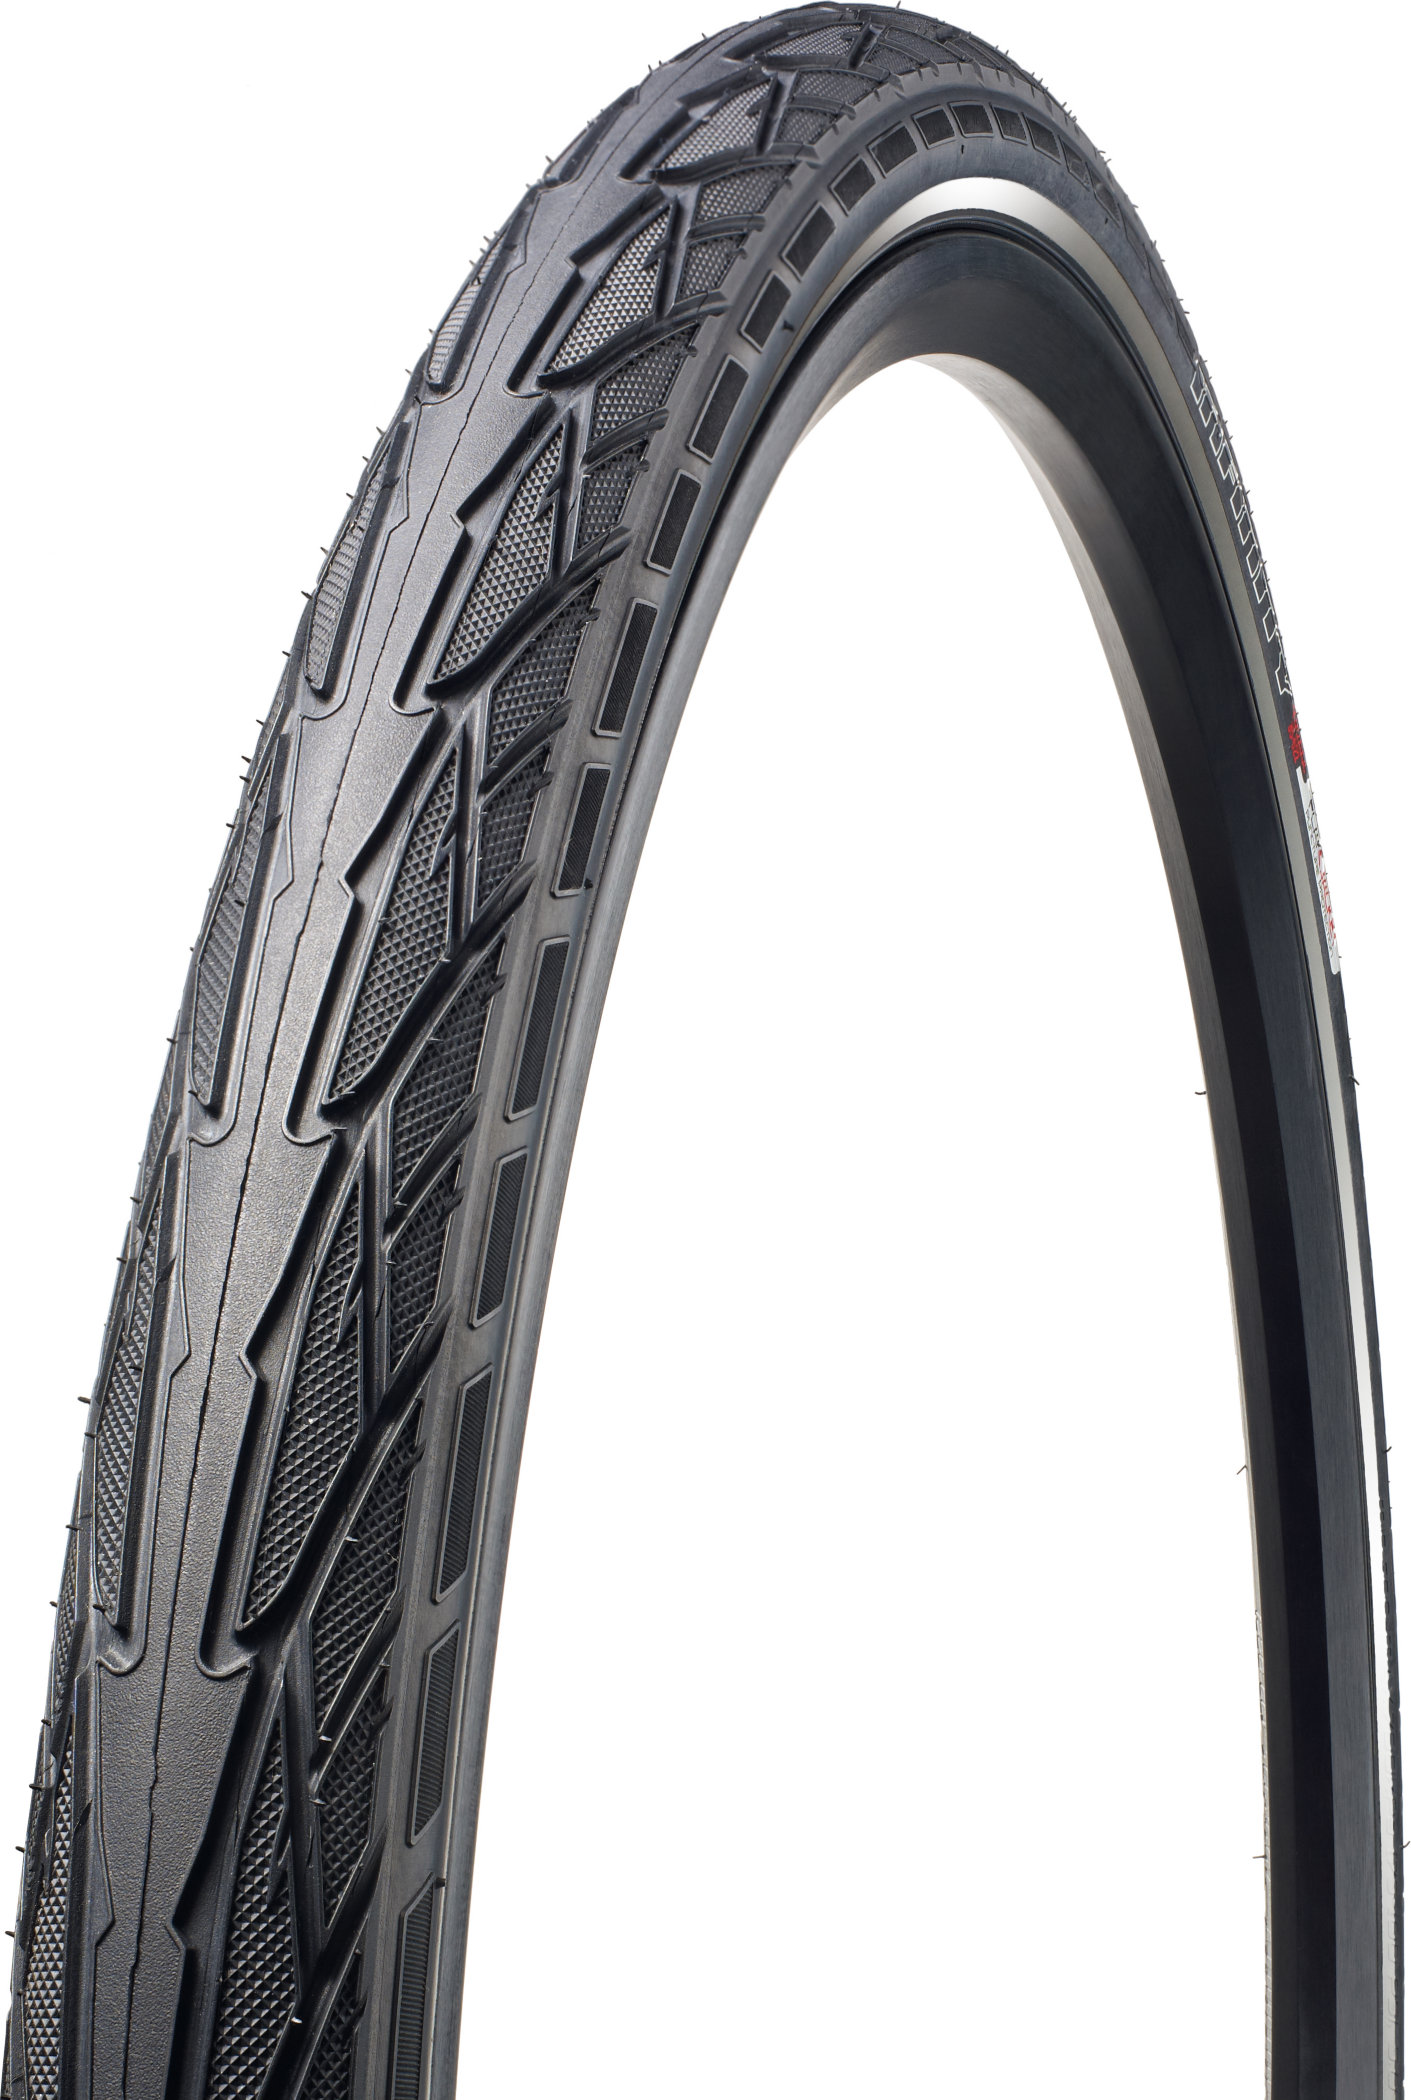 SPECIALIZED INFINITY SPORT REFLECT TIRE 26X1.75 - Alpha Bikes